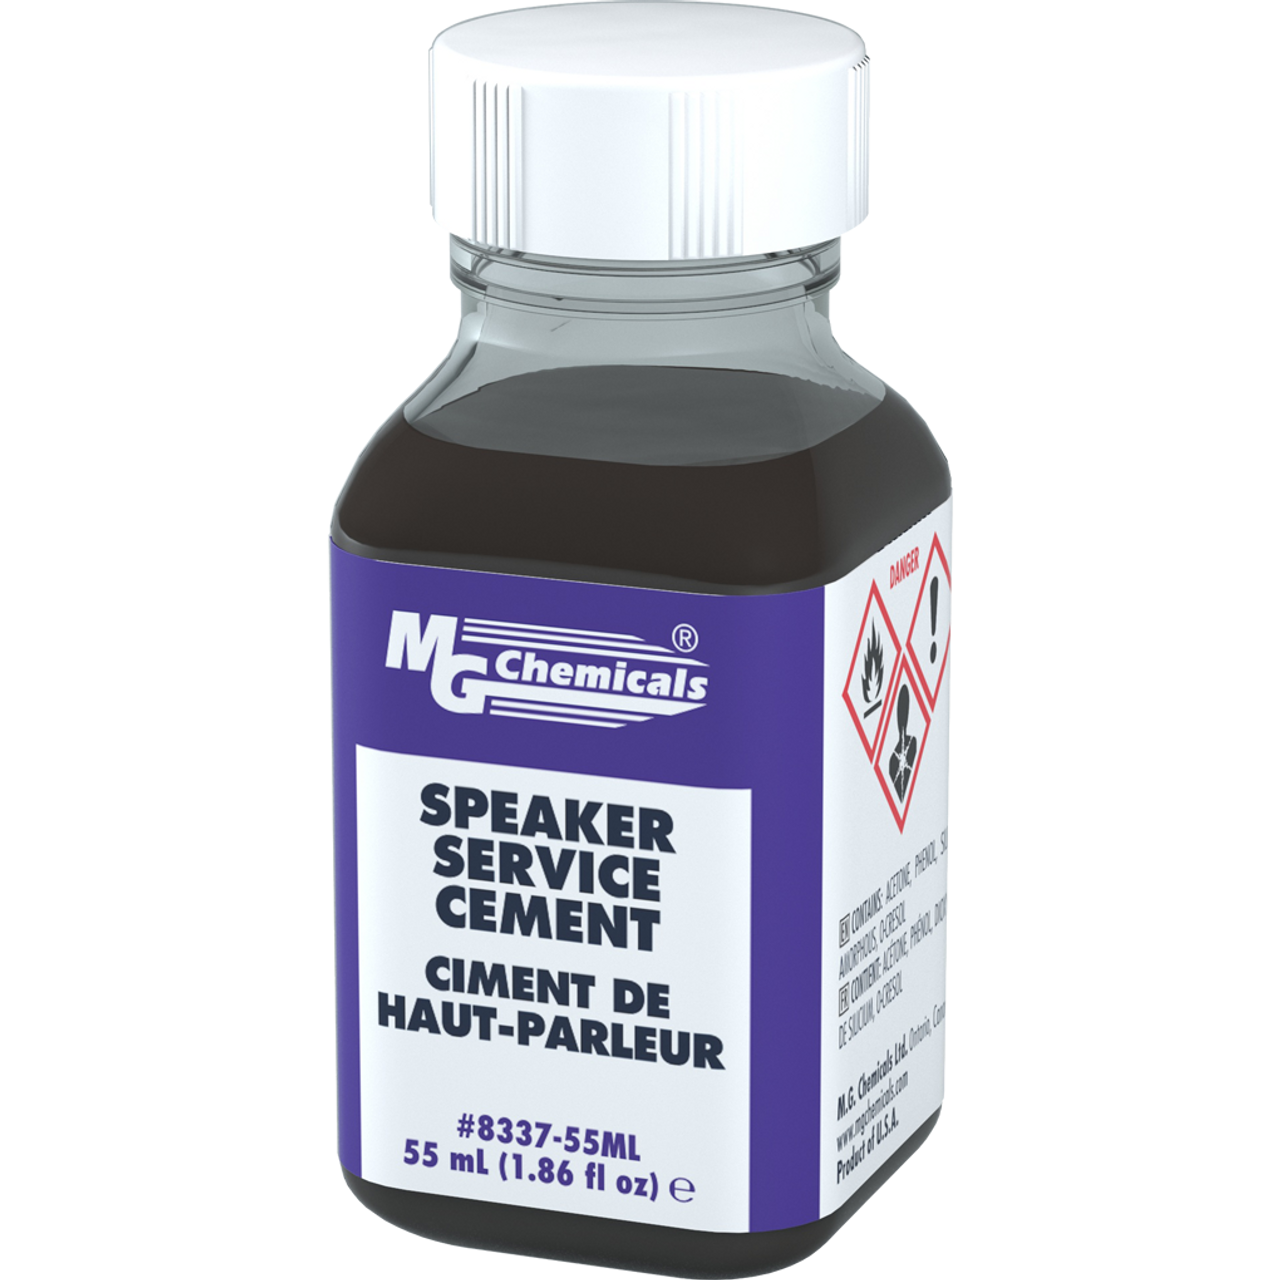 MG Chemicals - Speaker Service Cement